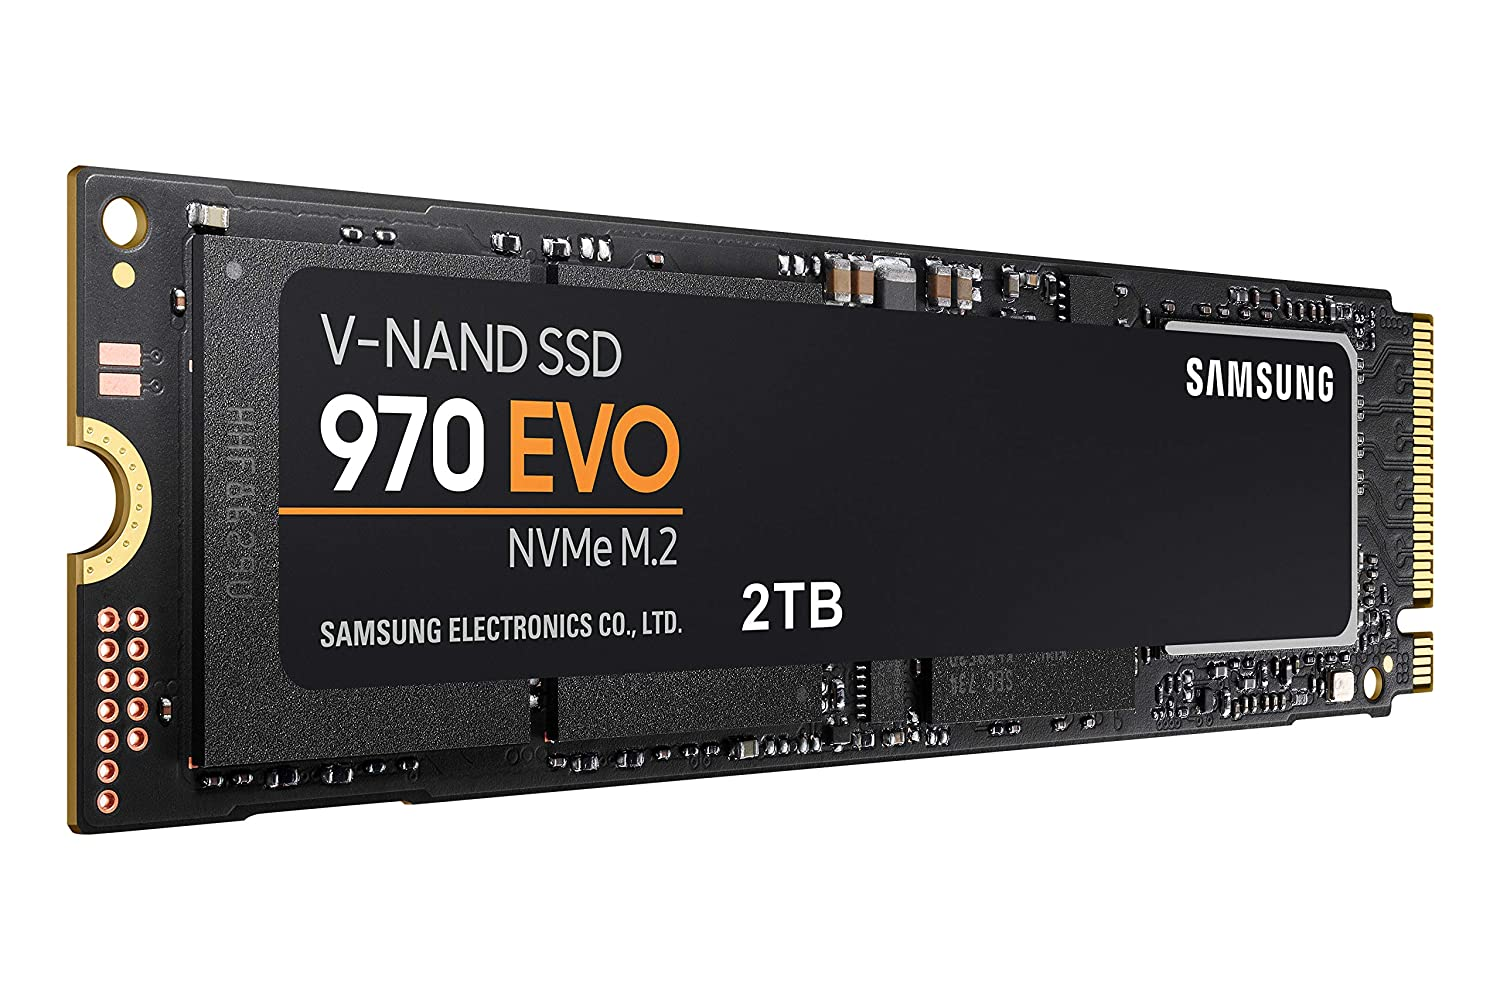 Samsung 970 EVO SSD 2TB - M.2 NVMe Interface Internal Solid State Drive with V-NAND Technology (MZ-V7E2T0BW)